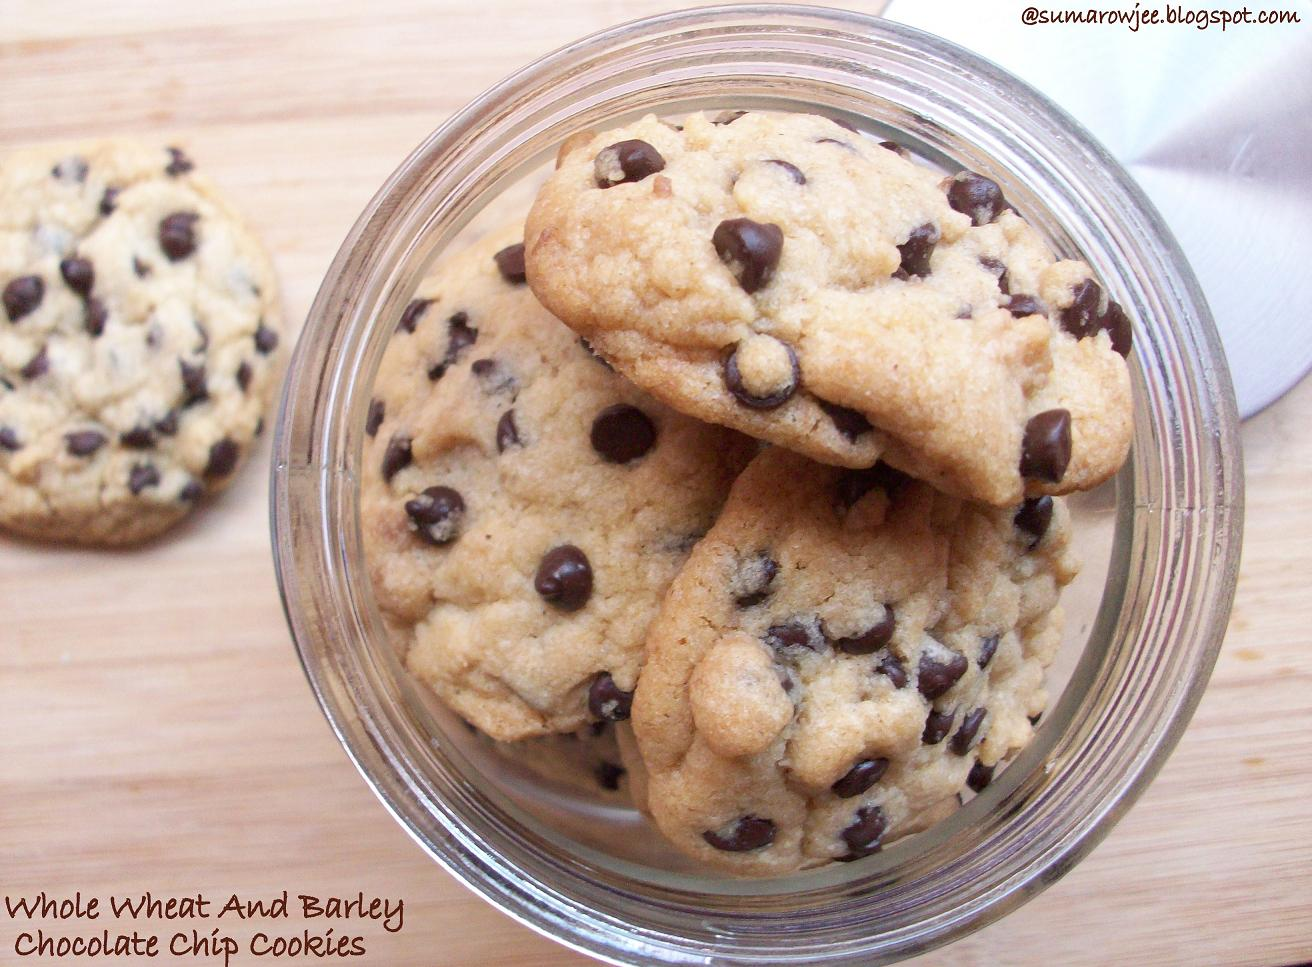 ... And More!: Crunchy, Whole Wheat And Barley Chocolate Chip Cookies